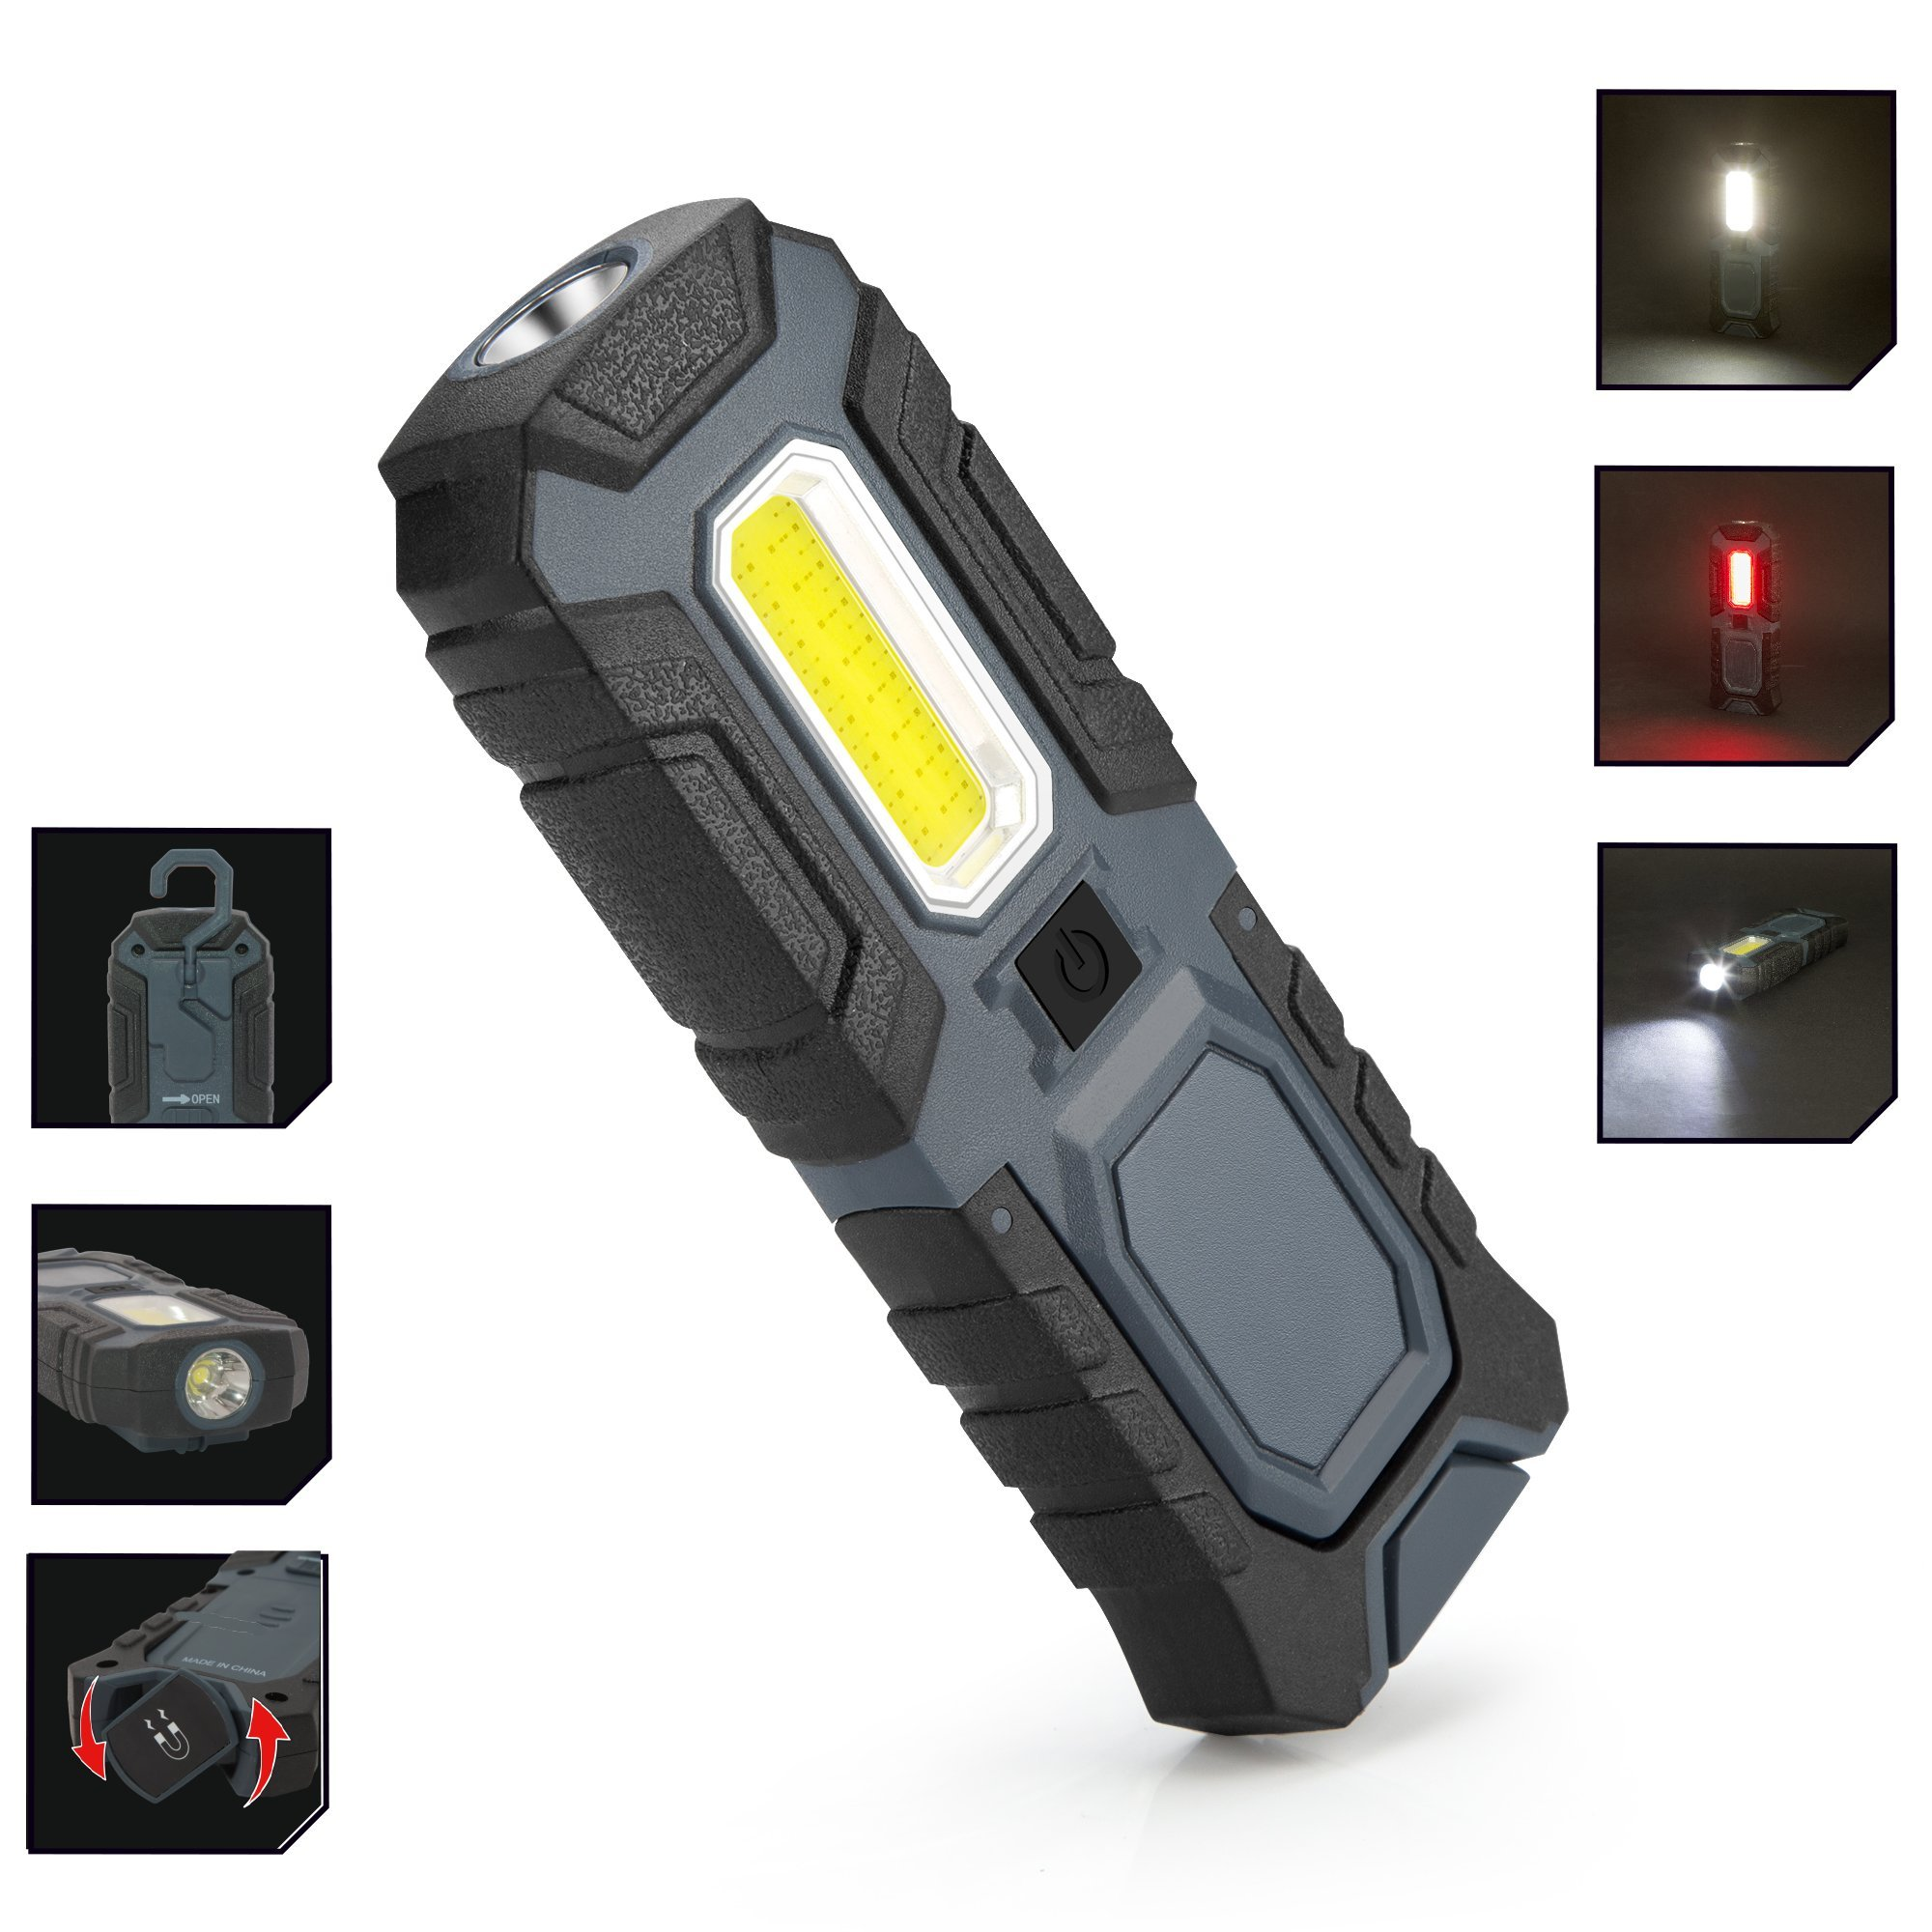 LED Flashlight 5W COB 400lumen Portable Work Light 2 in 1 function Worklamp for Workshop Car Repairing Emergency Blackout Cycling by YAKOUTFITTERS (Image #2)